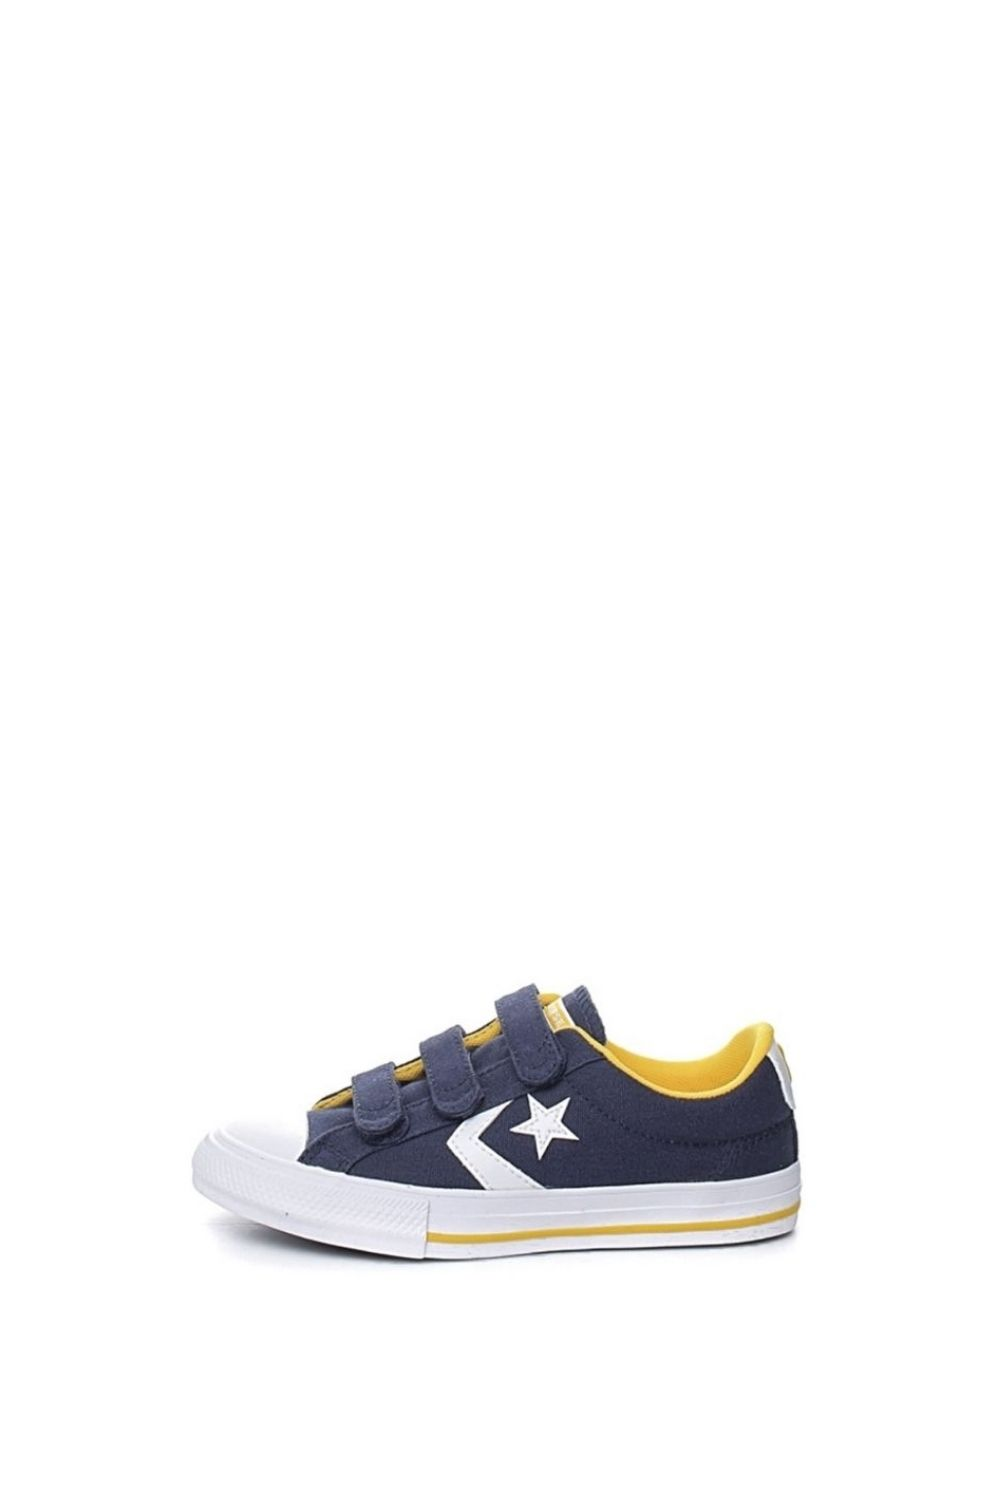 CONVERSE – Παιδικά sneakers CONVERSE STAR PLAYER 3V CANVAS μπλε κίτρινα